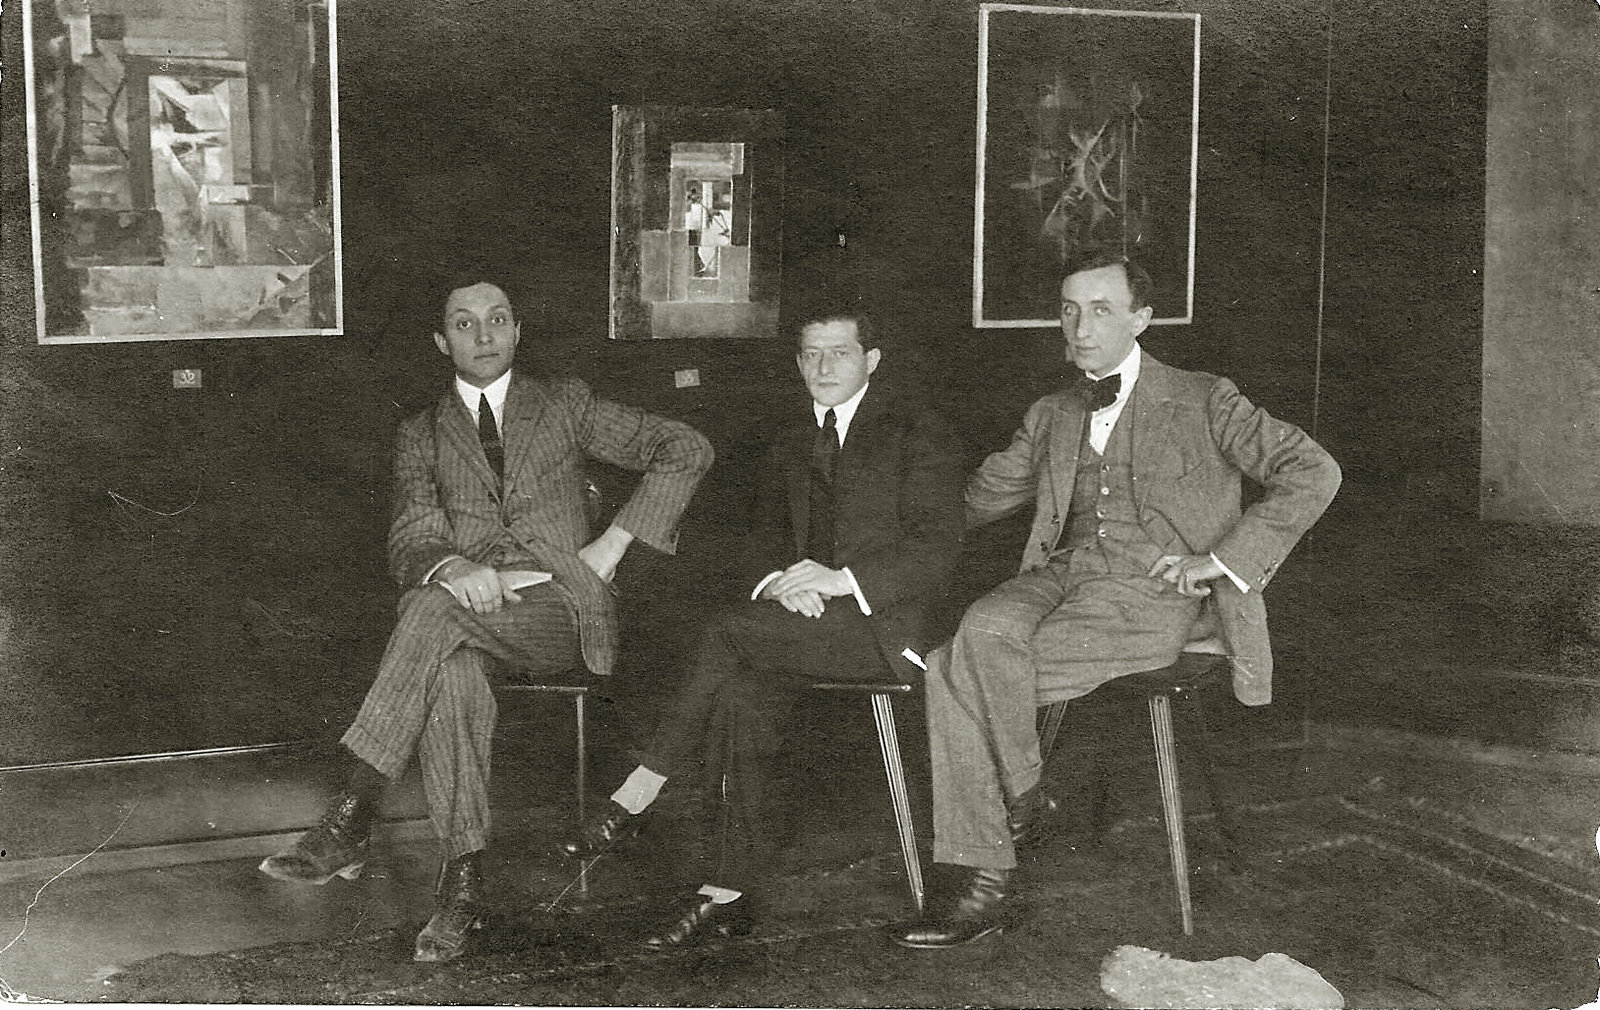 Marcel Janco, first from the left, at the Wolfsberg gallery, Zurich, September 1918, Unknown, Janco Archives, Copyright Not Evaluated